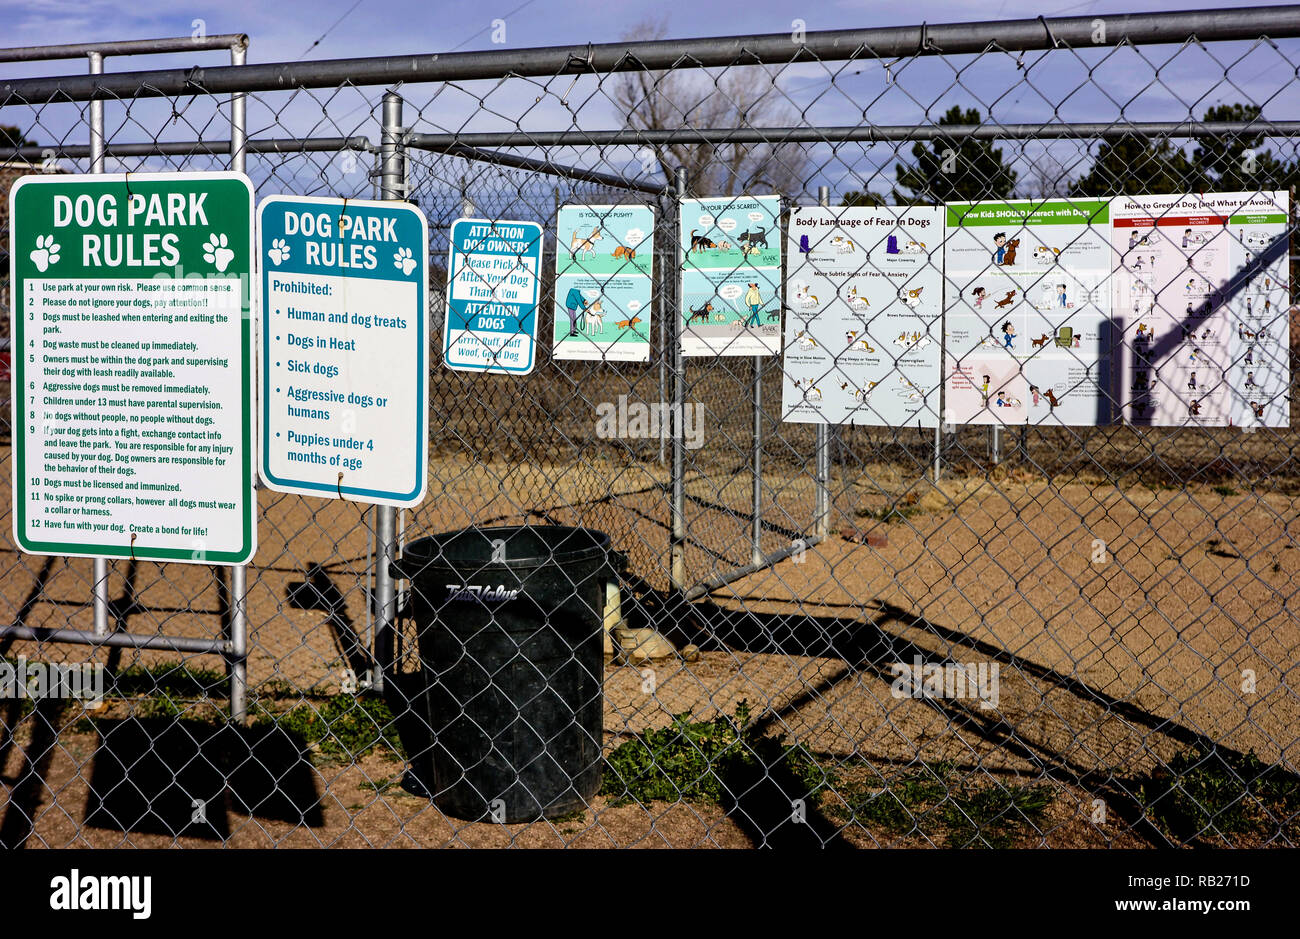 Posters showing the dog park rules situated in Alpine, Texas - Stock Image